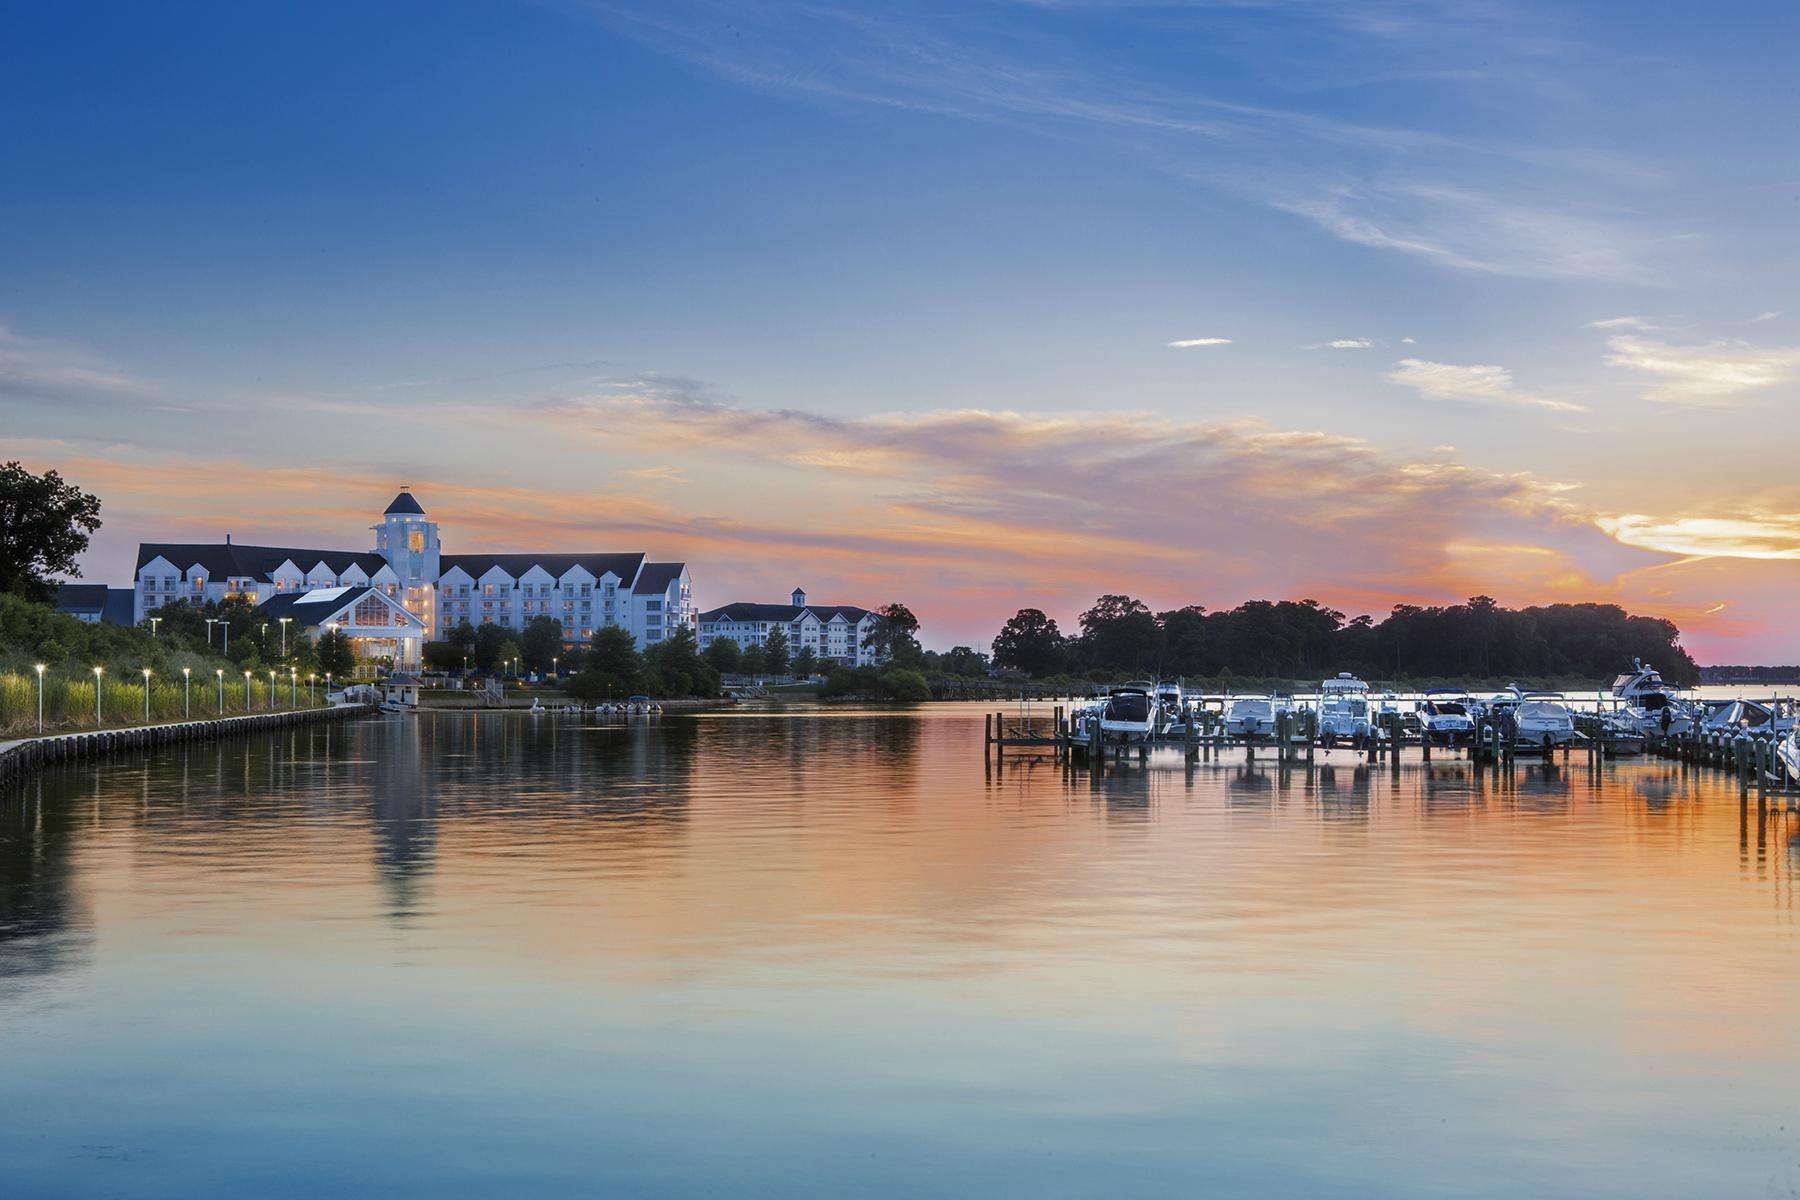 Hyatt Regency Chesapeake Bay Golf Resort, Spa & Marina